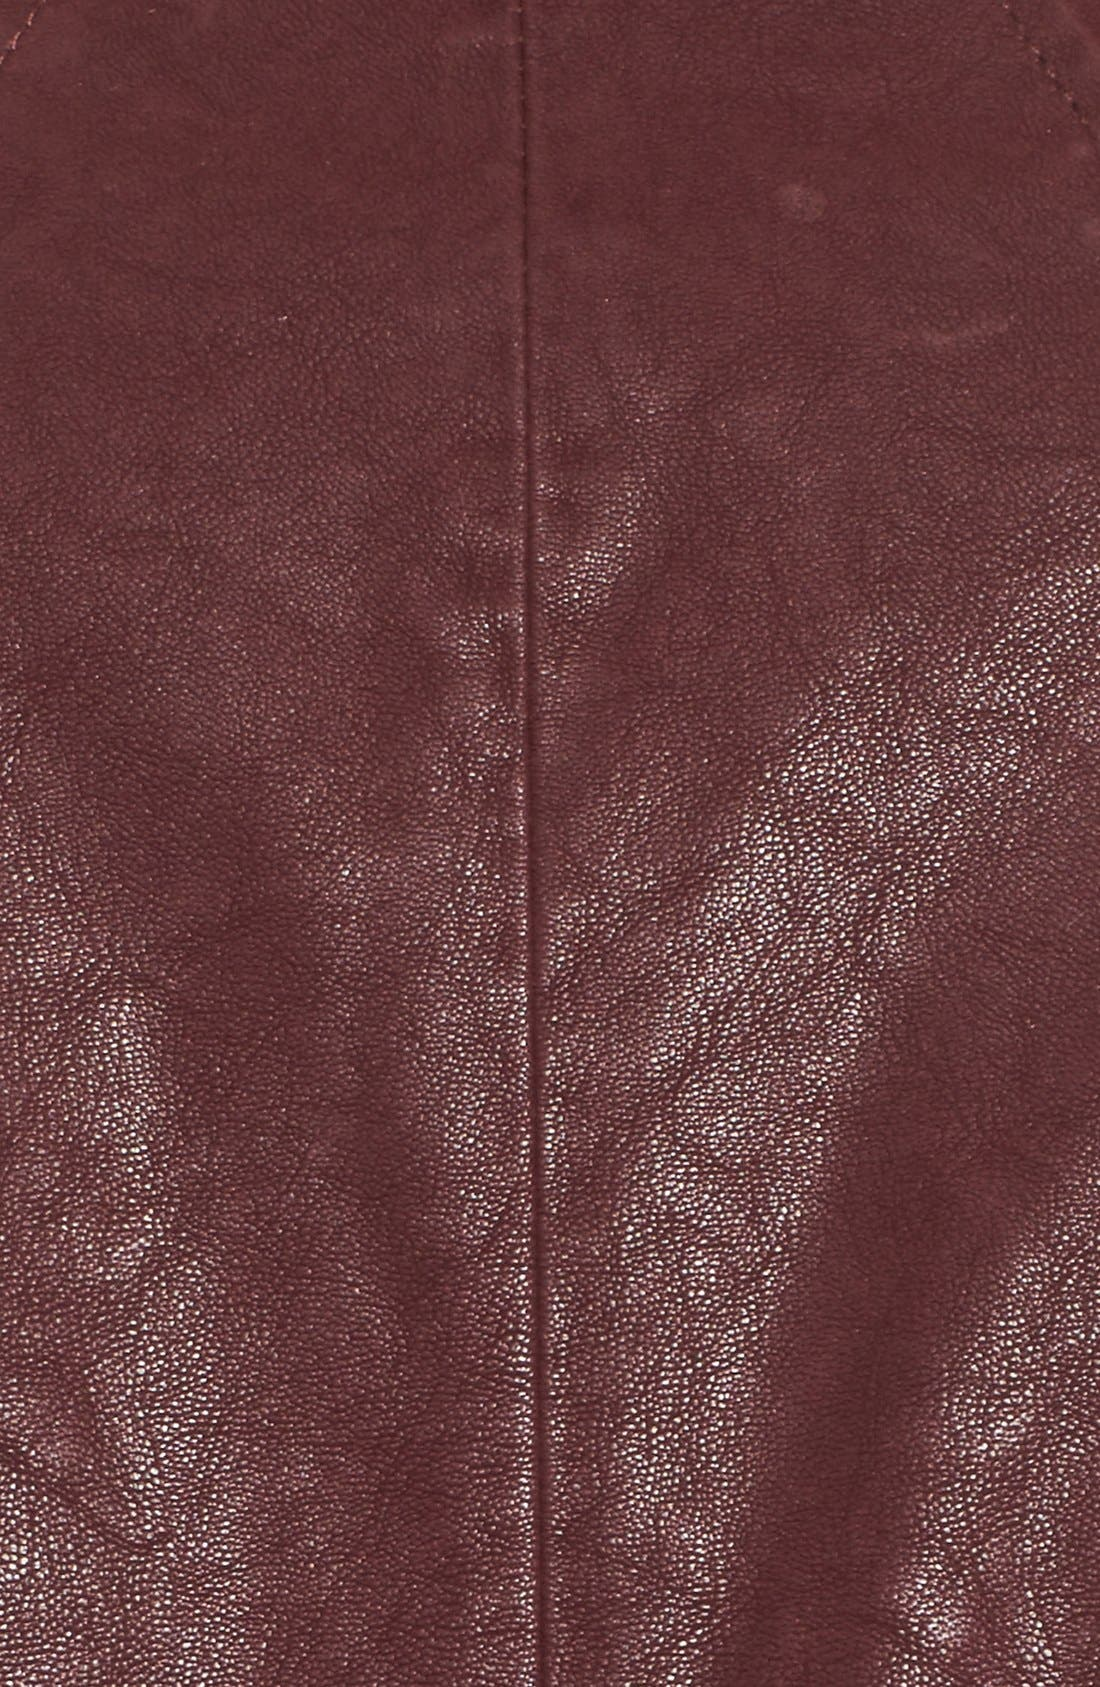 Alternate Image 5  - GUESS Faux Leather Moto Jacket with Faux Fur Trim